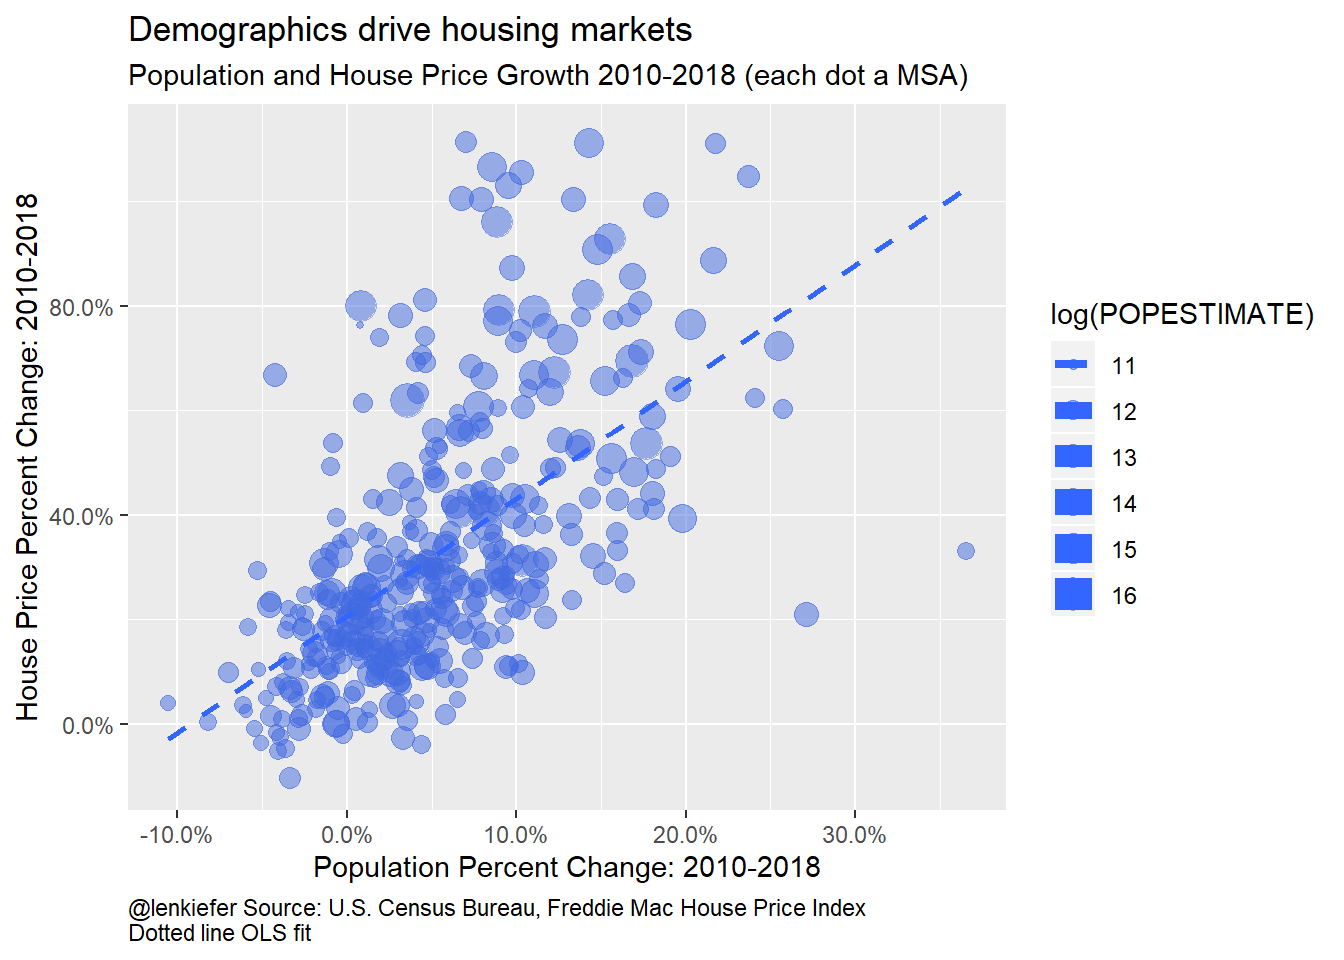 Population and House Price Growth 2010-2018